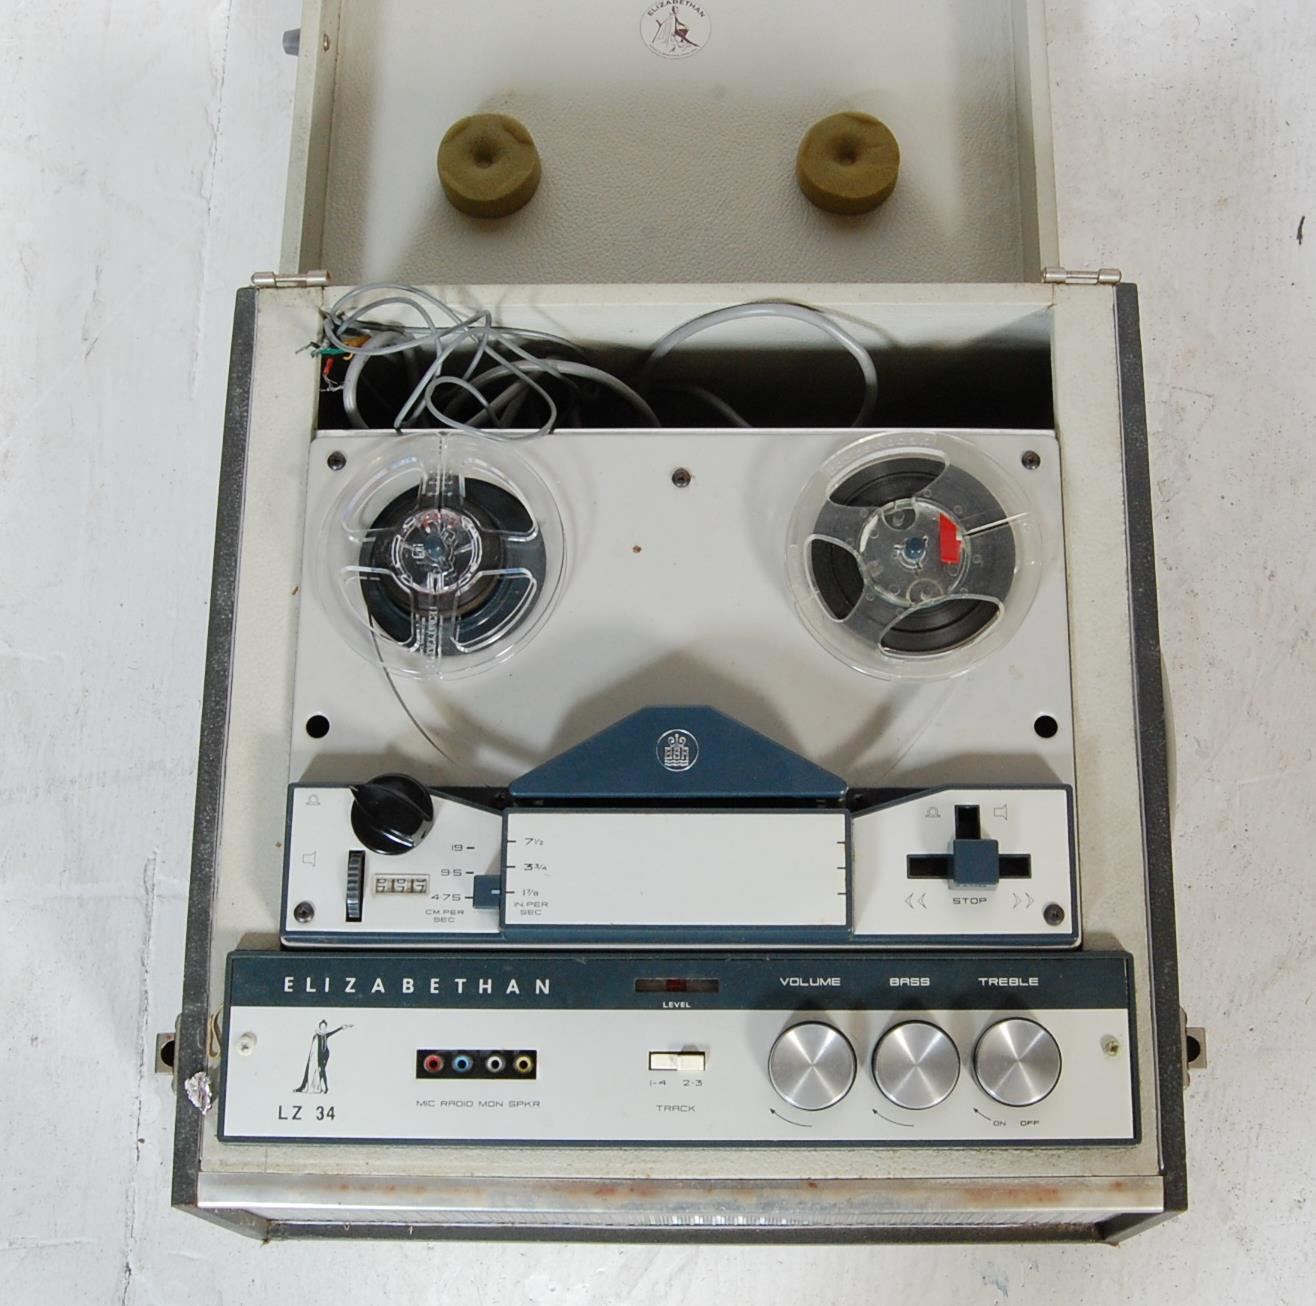 ELIZABETHAN LZ 34 REEL TO REEL PLAYER AND TAPES